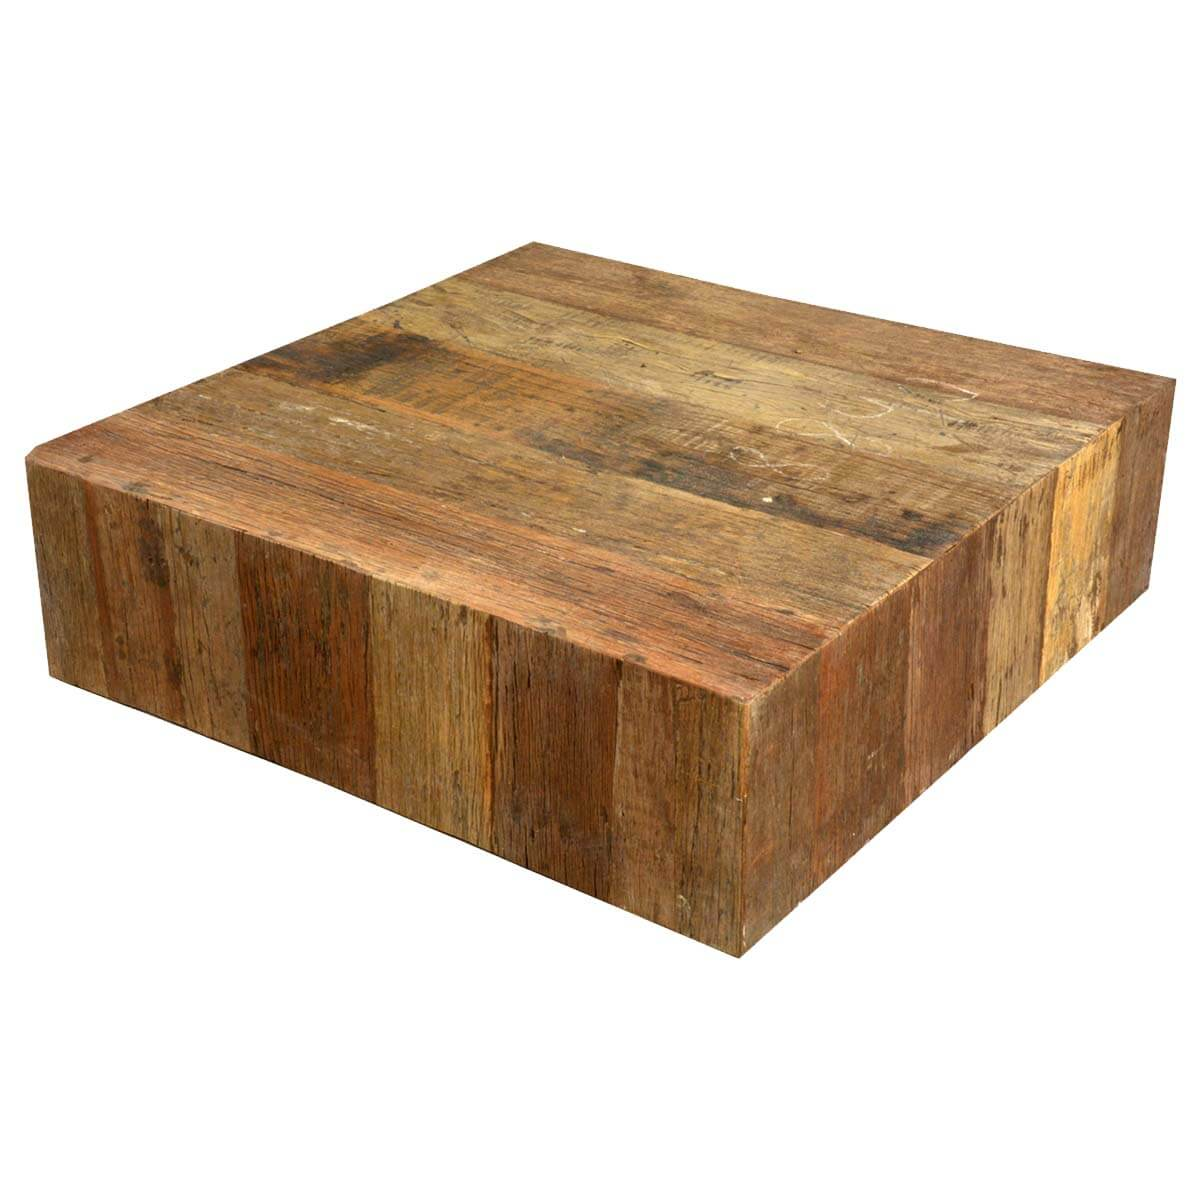 Unique rustic railroad reclaimed wood square coffee table fremont california Rustic wooden coffee tables